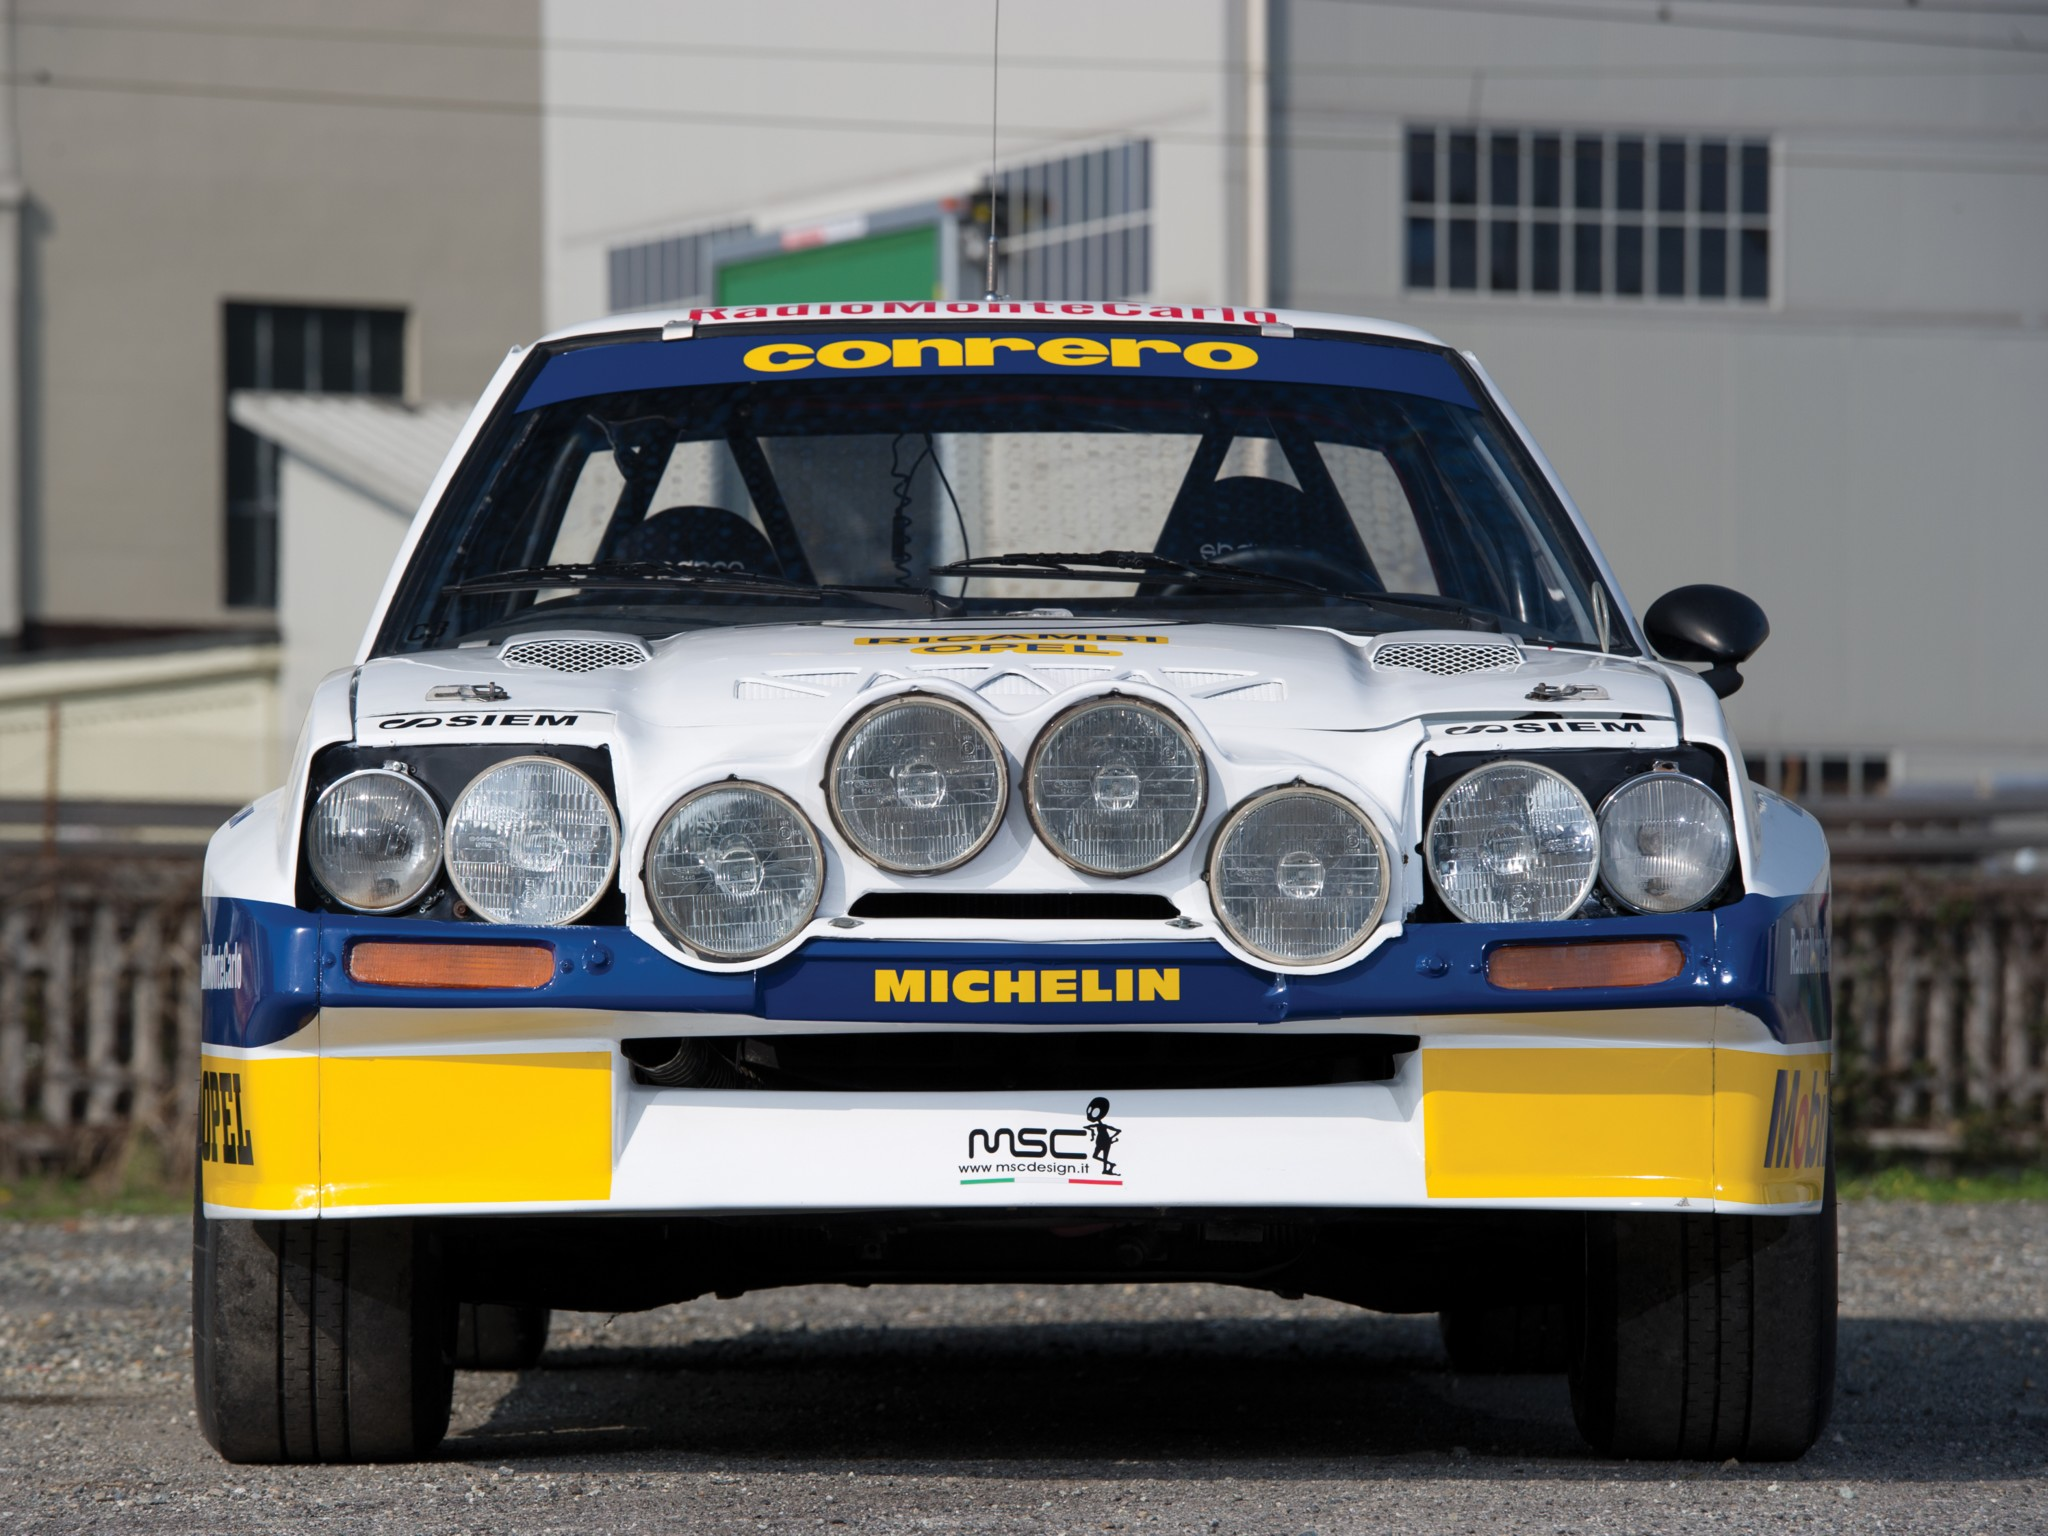 You can vote for this Opel Manta 400 Rally photo